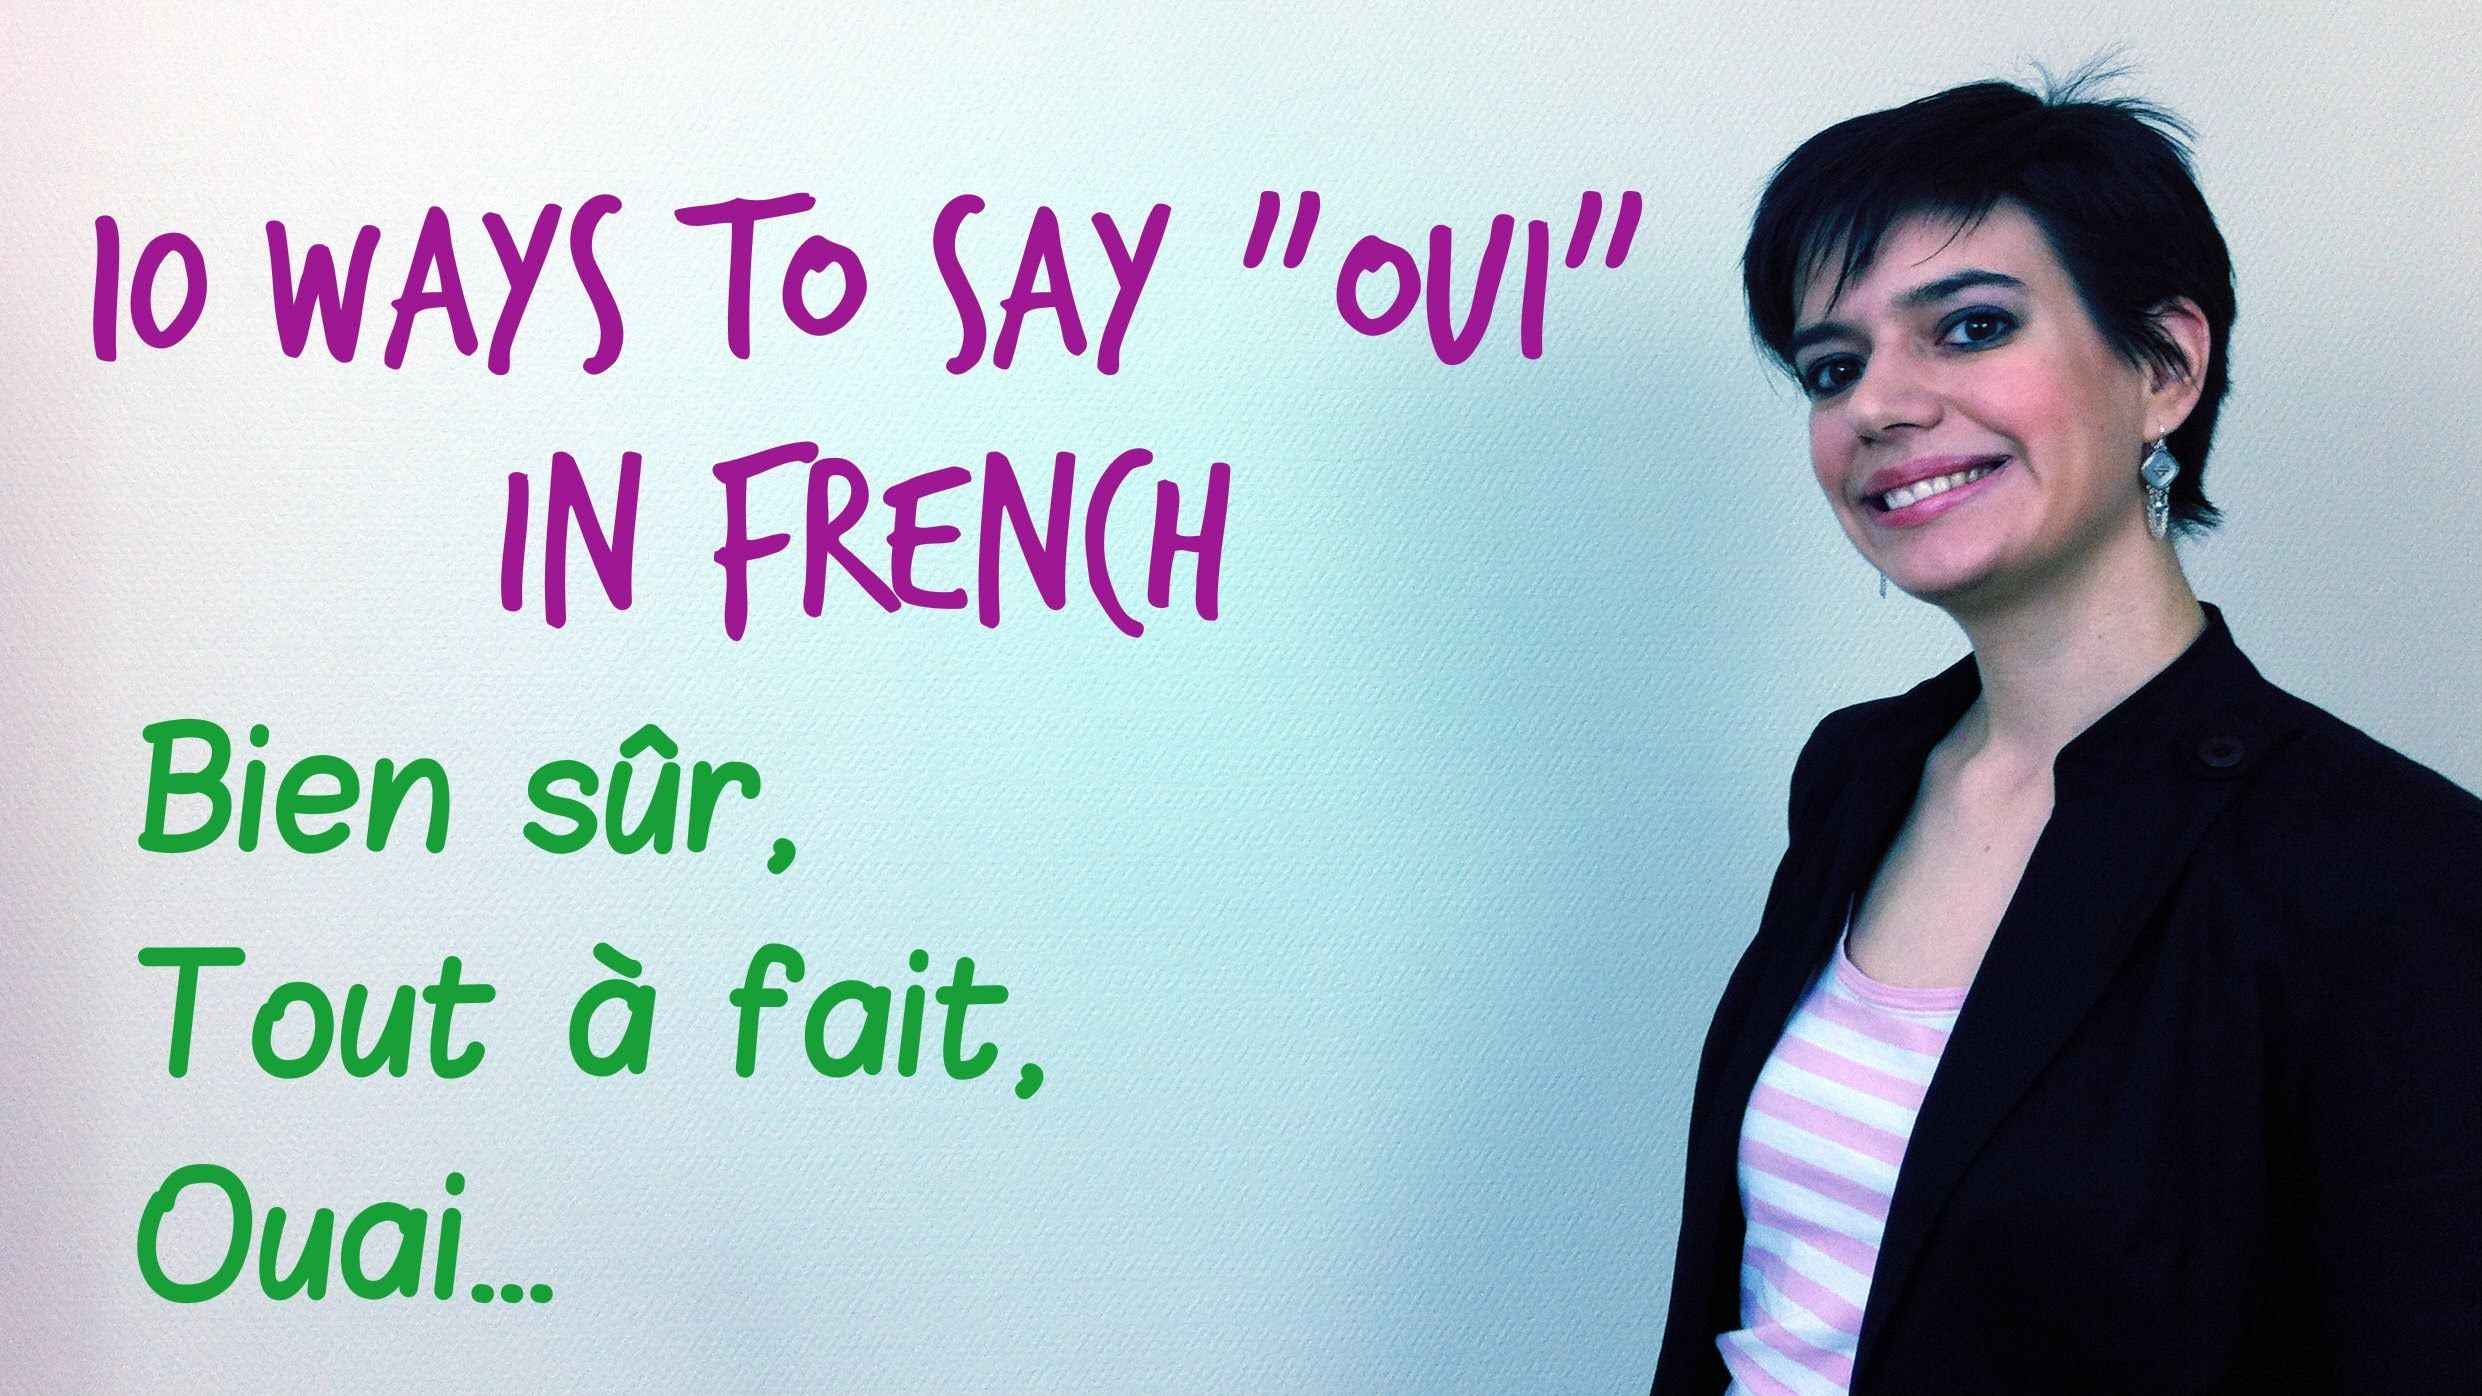 Pin By Starbright On French Video Tutorials French Words Teaching French French Vocabulary